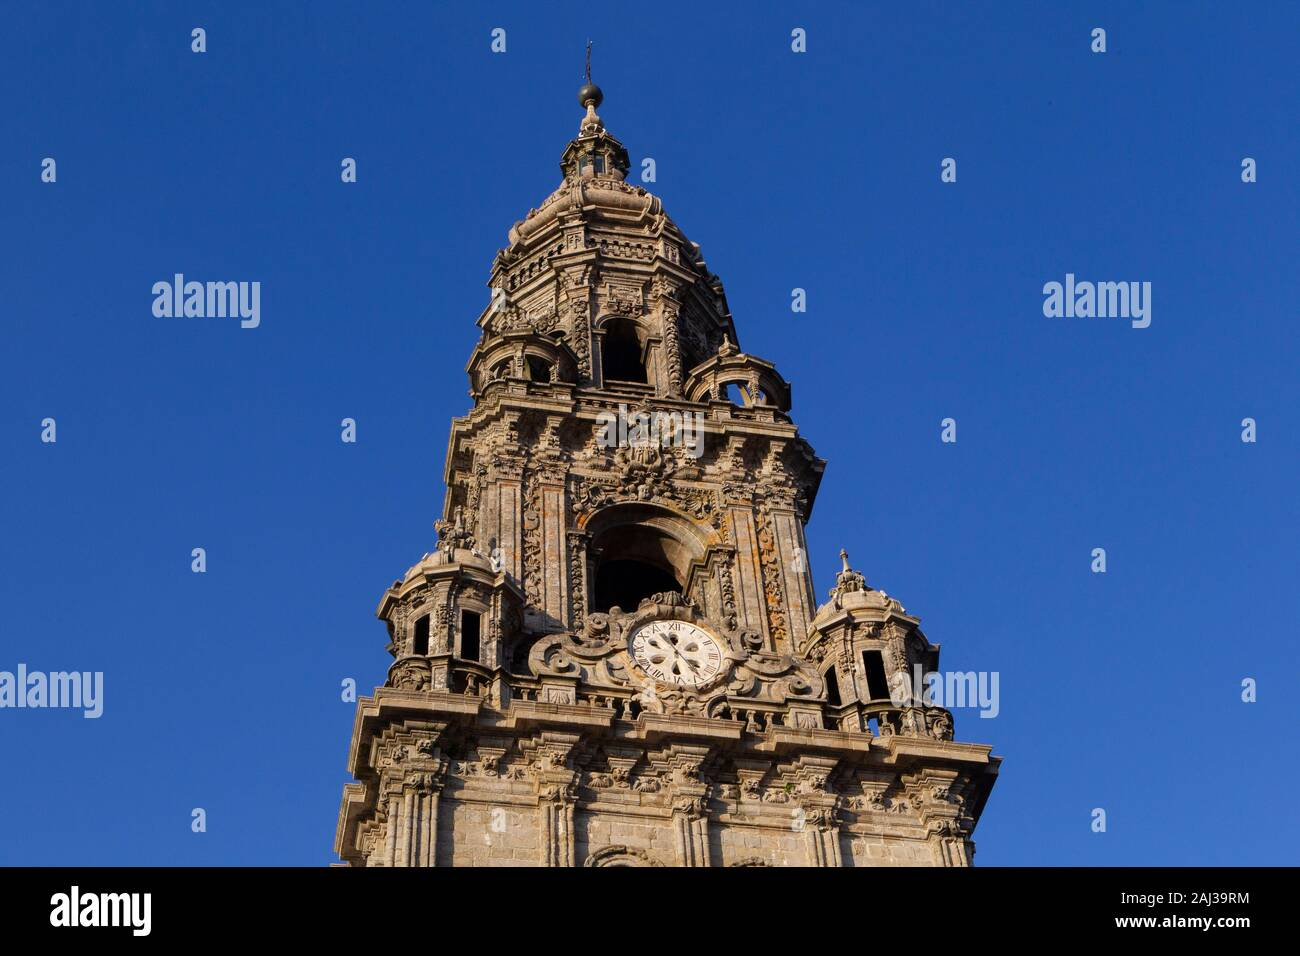 Clock tower of the cathedral of Santiago de Compostela Stock Photo